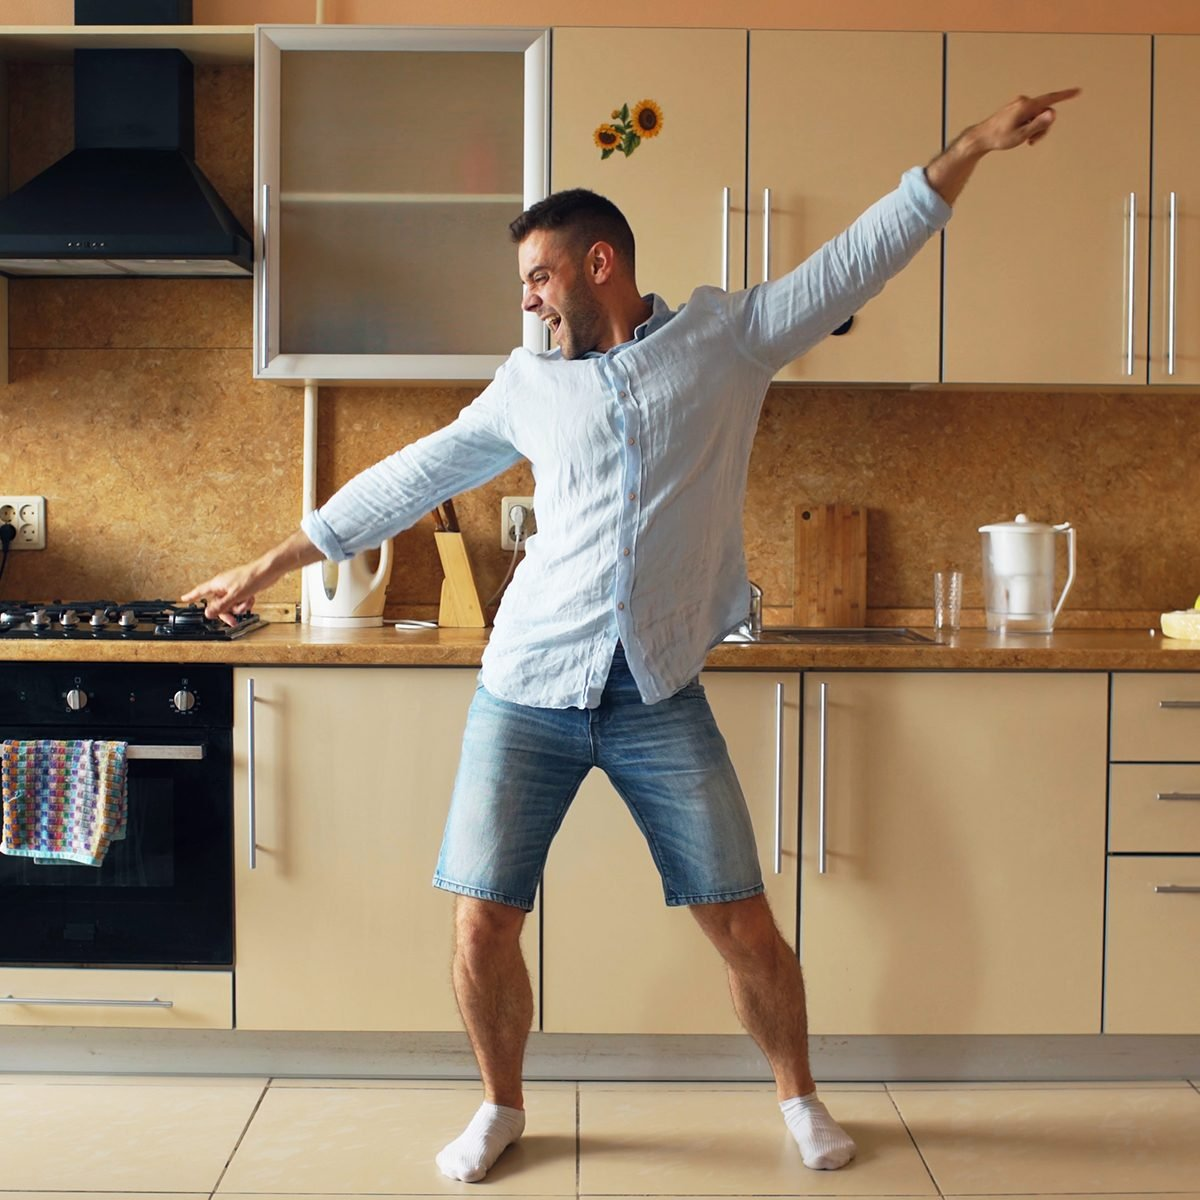 Man dancing in his kitchen